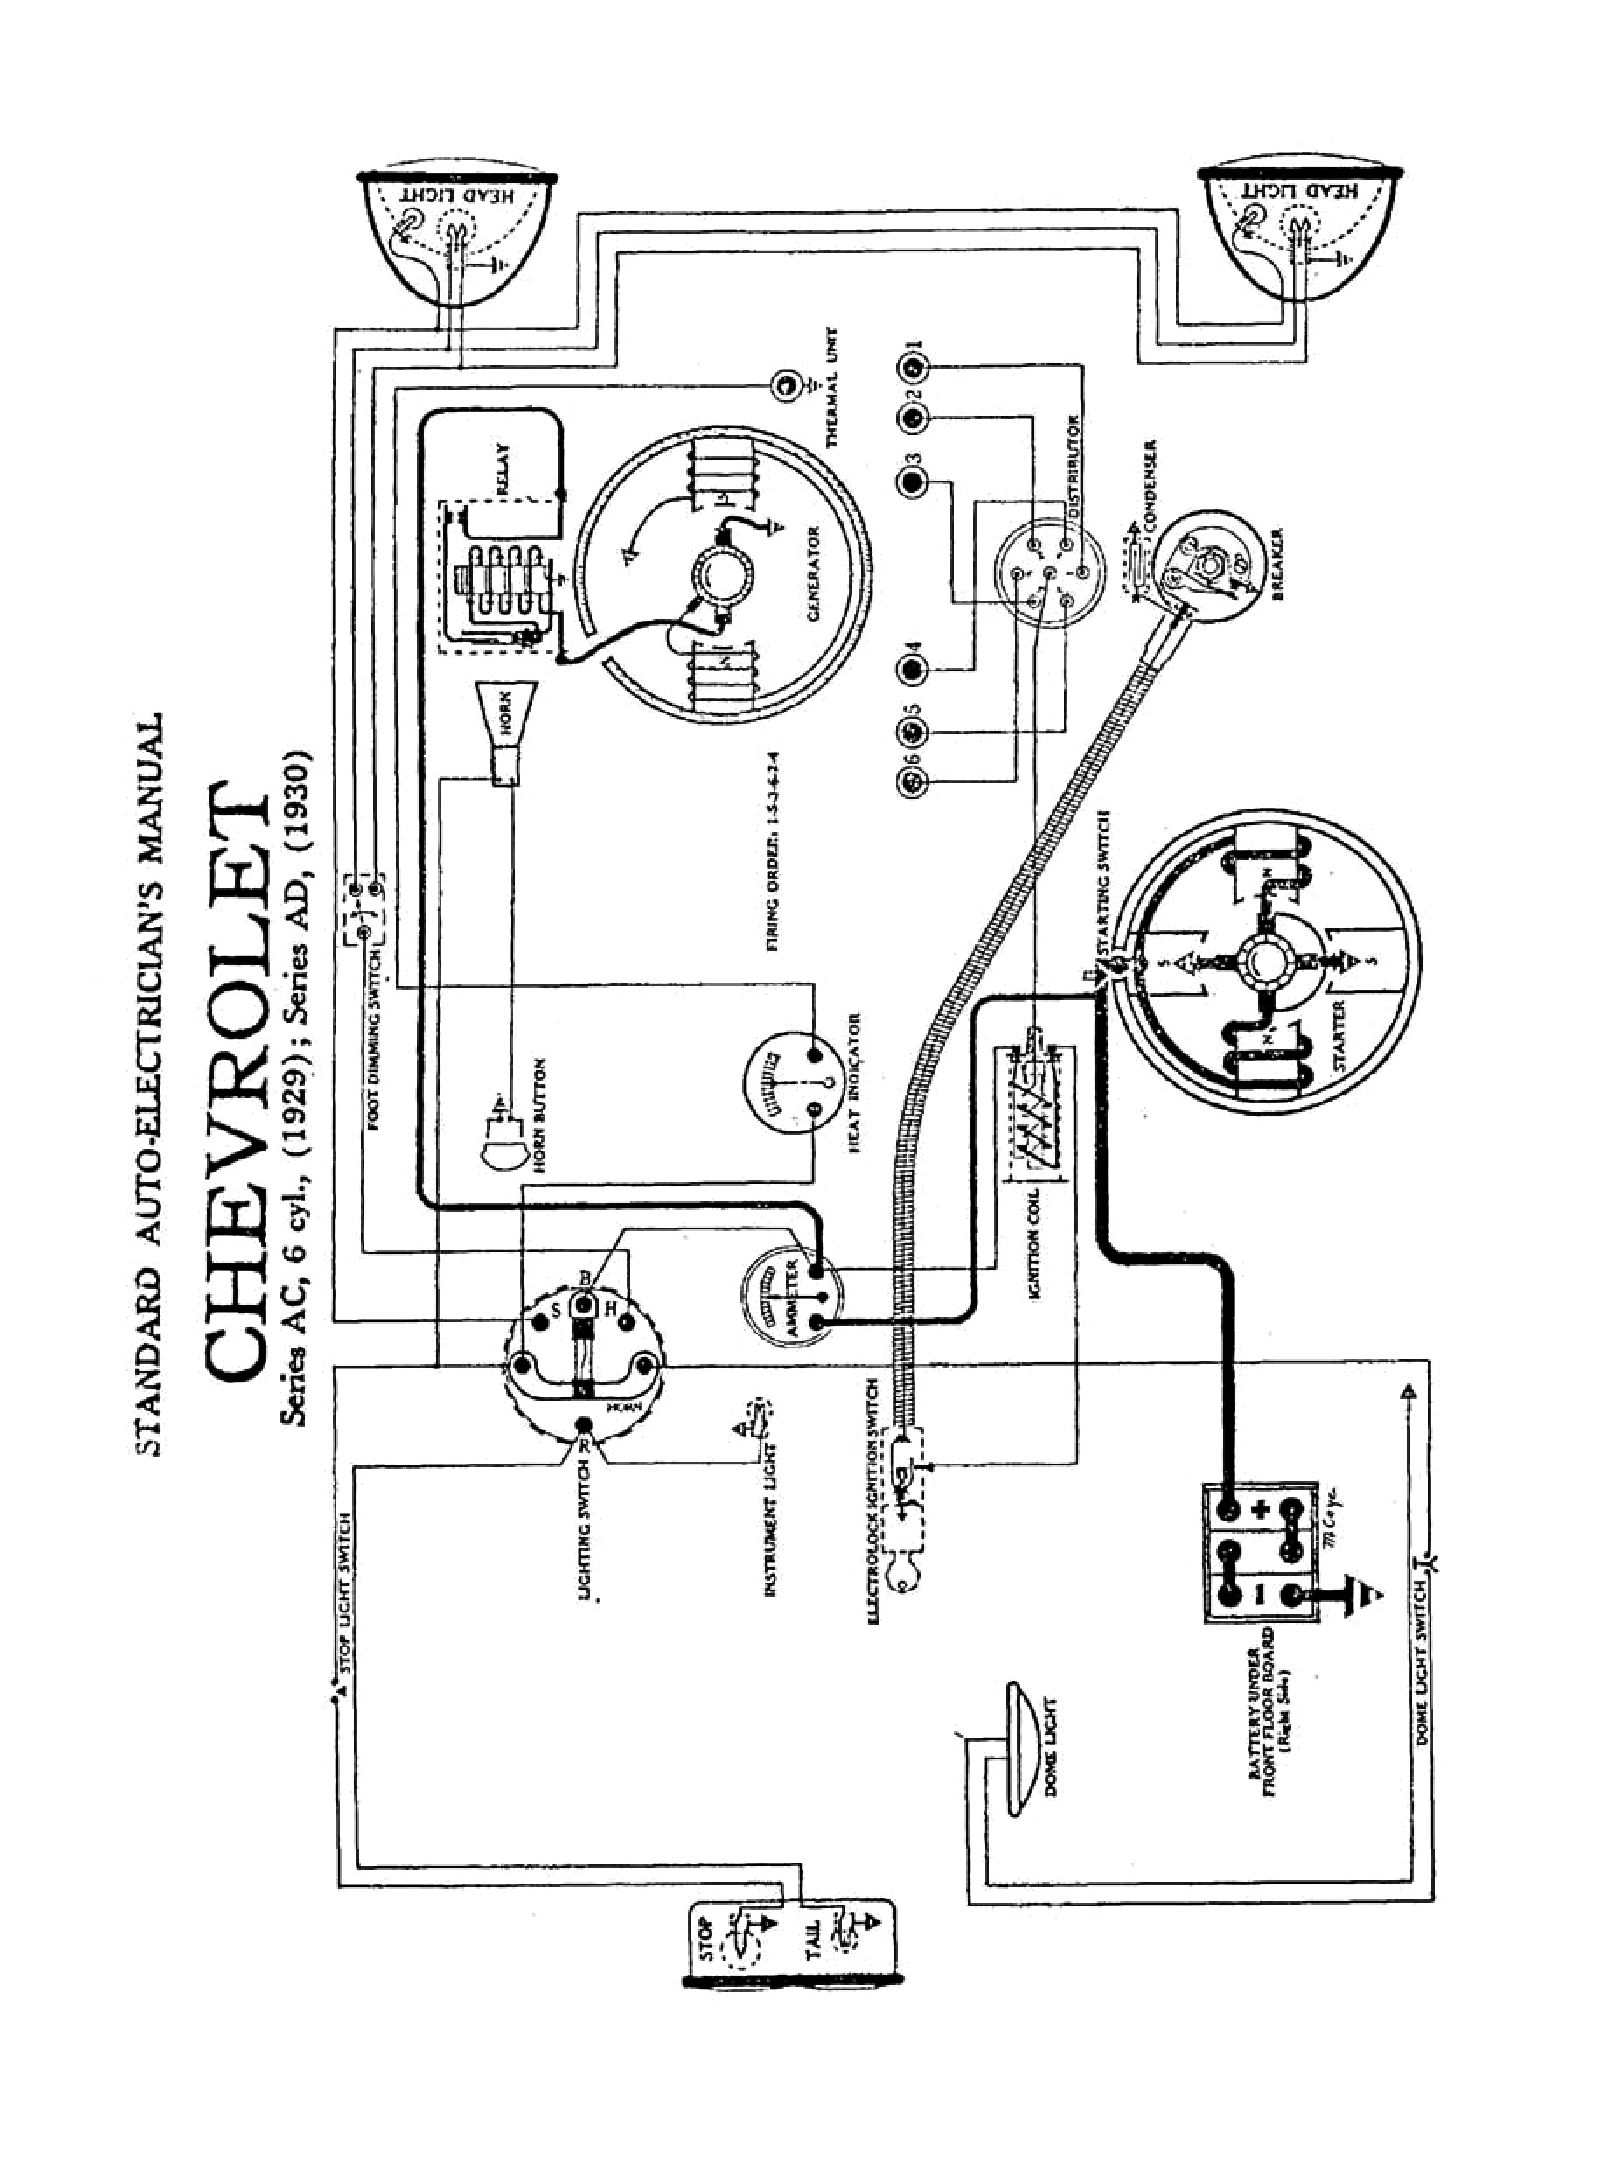 hight resolution of 62 ford generator wiring diagram wiring diagram blogs 9n ford generator wiring diagram 62 ford generator